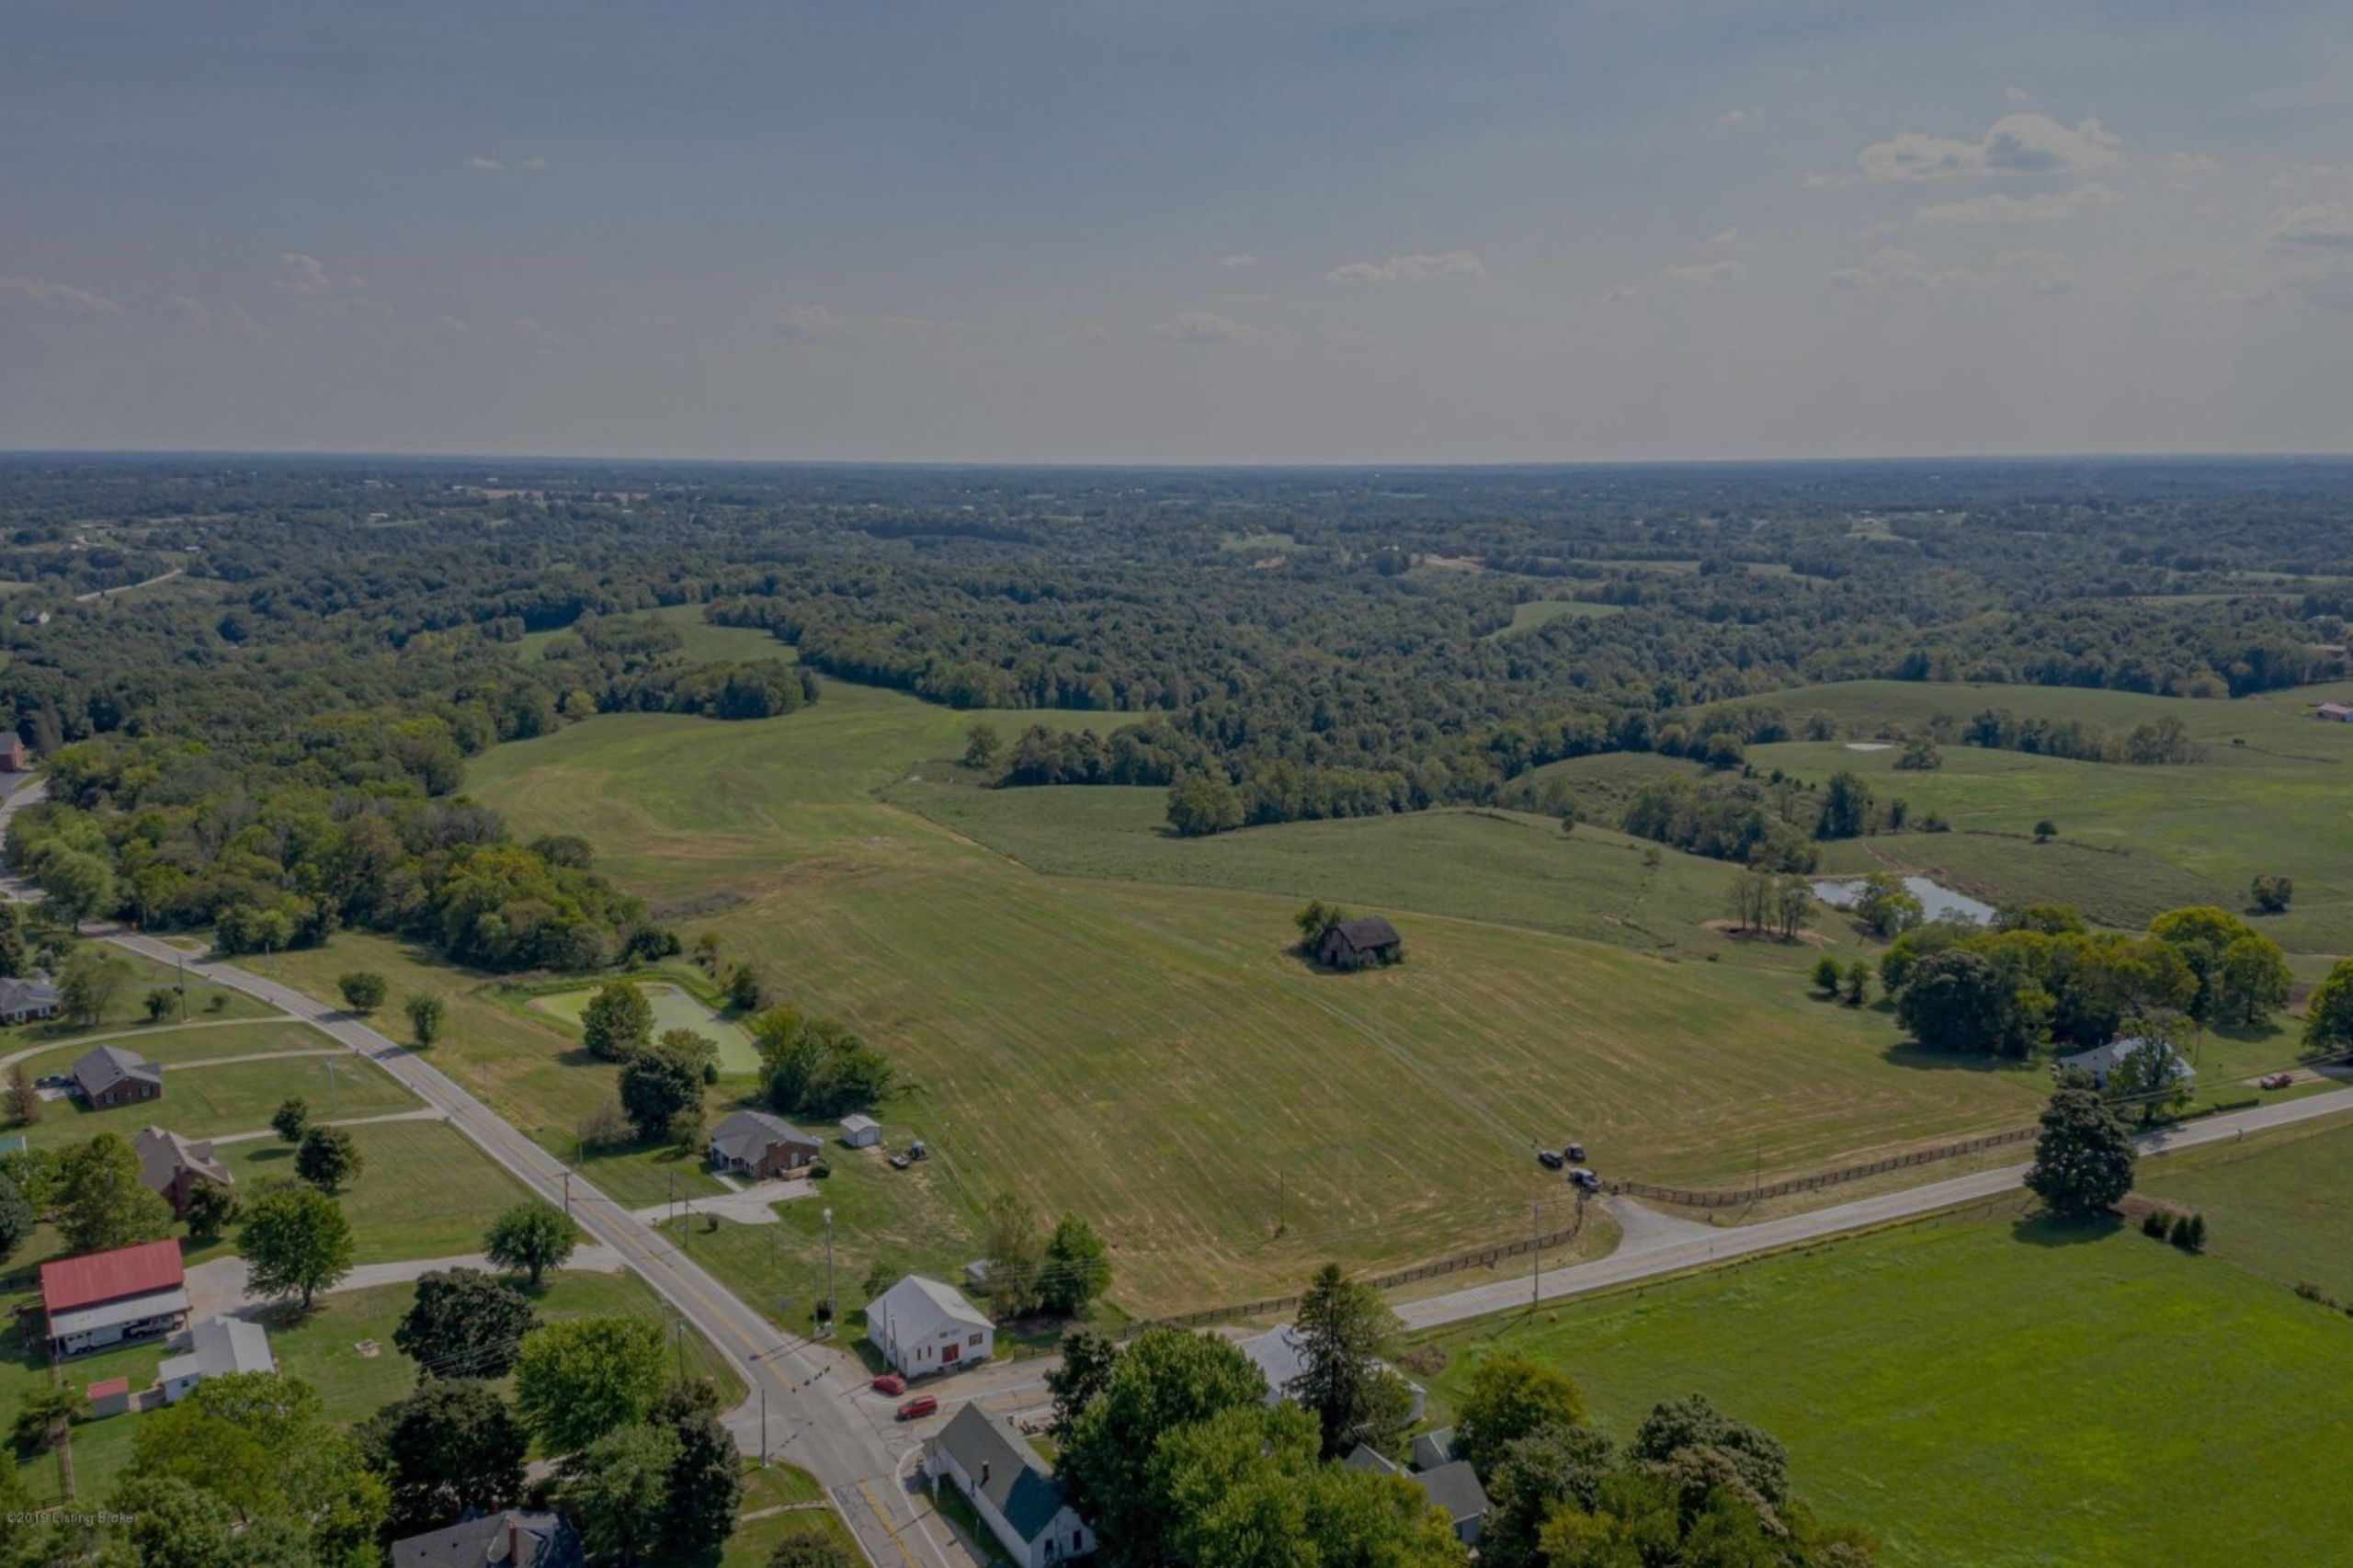 286 Acres of Prime Shelby County Real Estate – $1,500,000